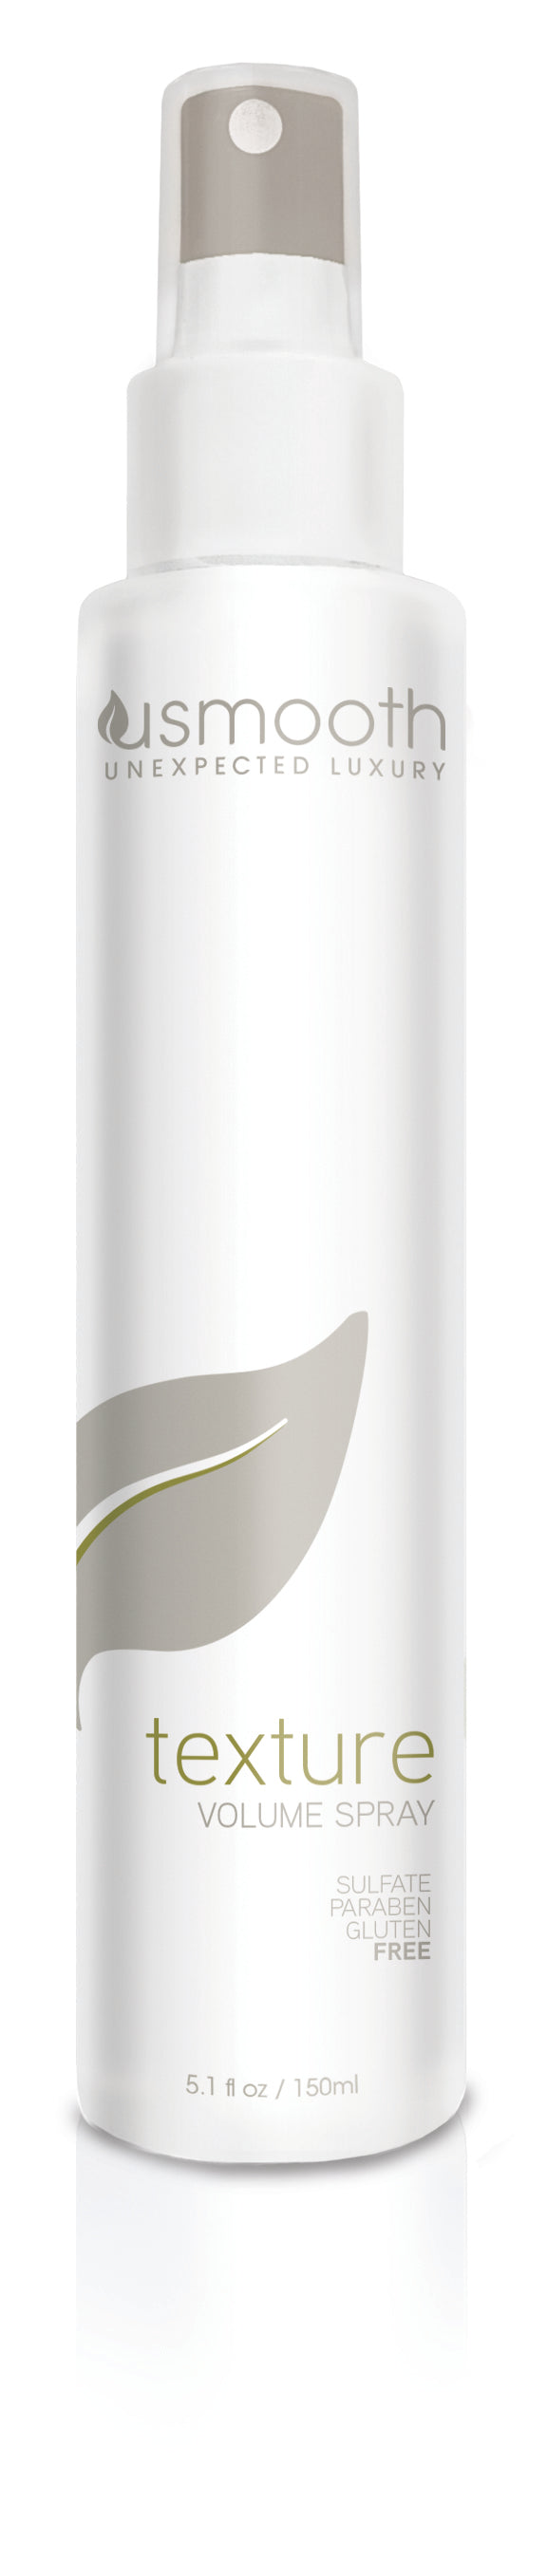 Usmooth texture VOLUME SPRAY